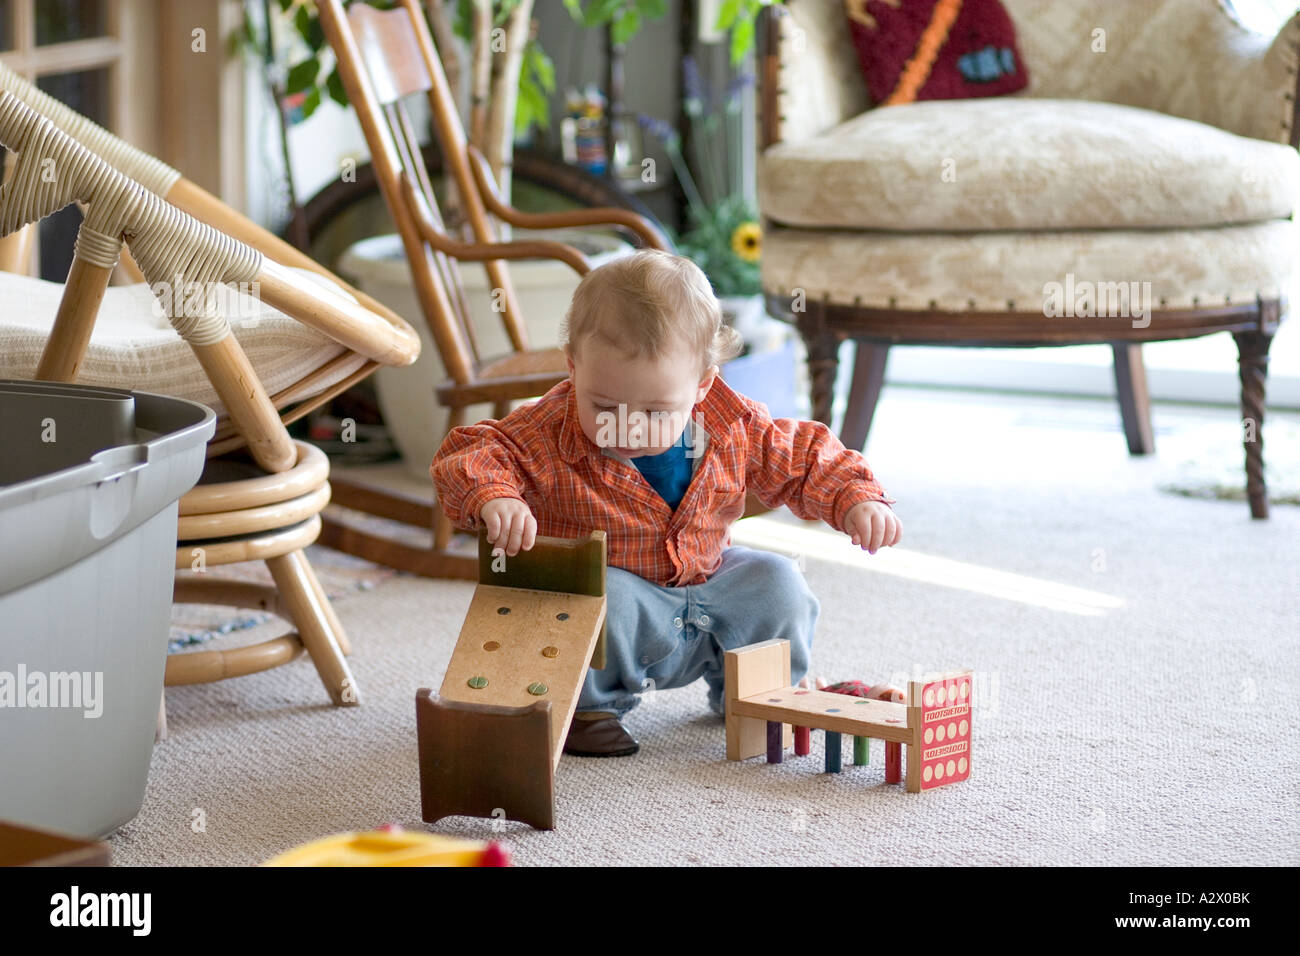 Child toddler playing with pegboard workbench age 1. Plainfield Illinois IL USA - Stock Image